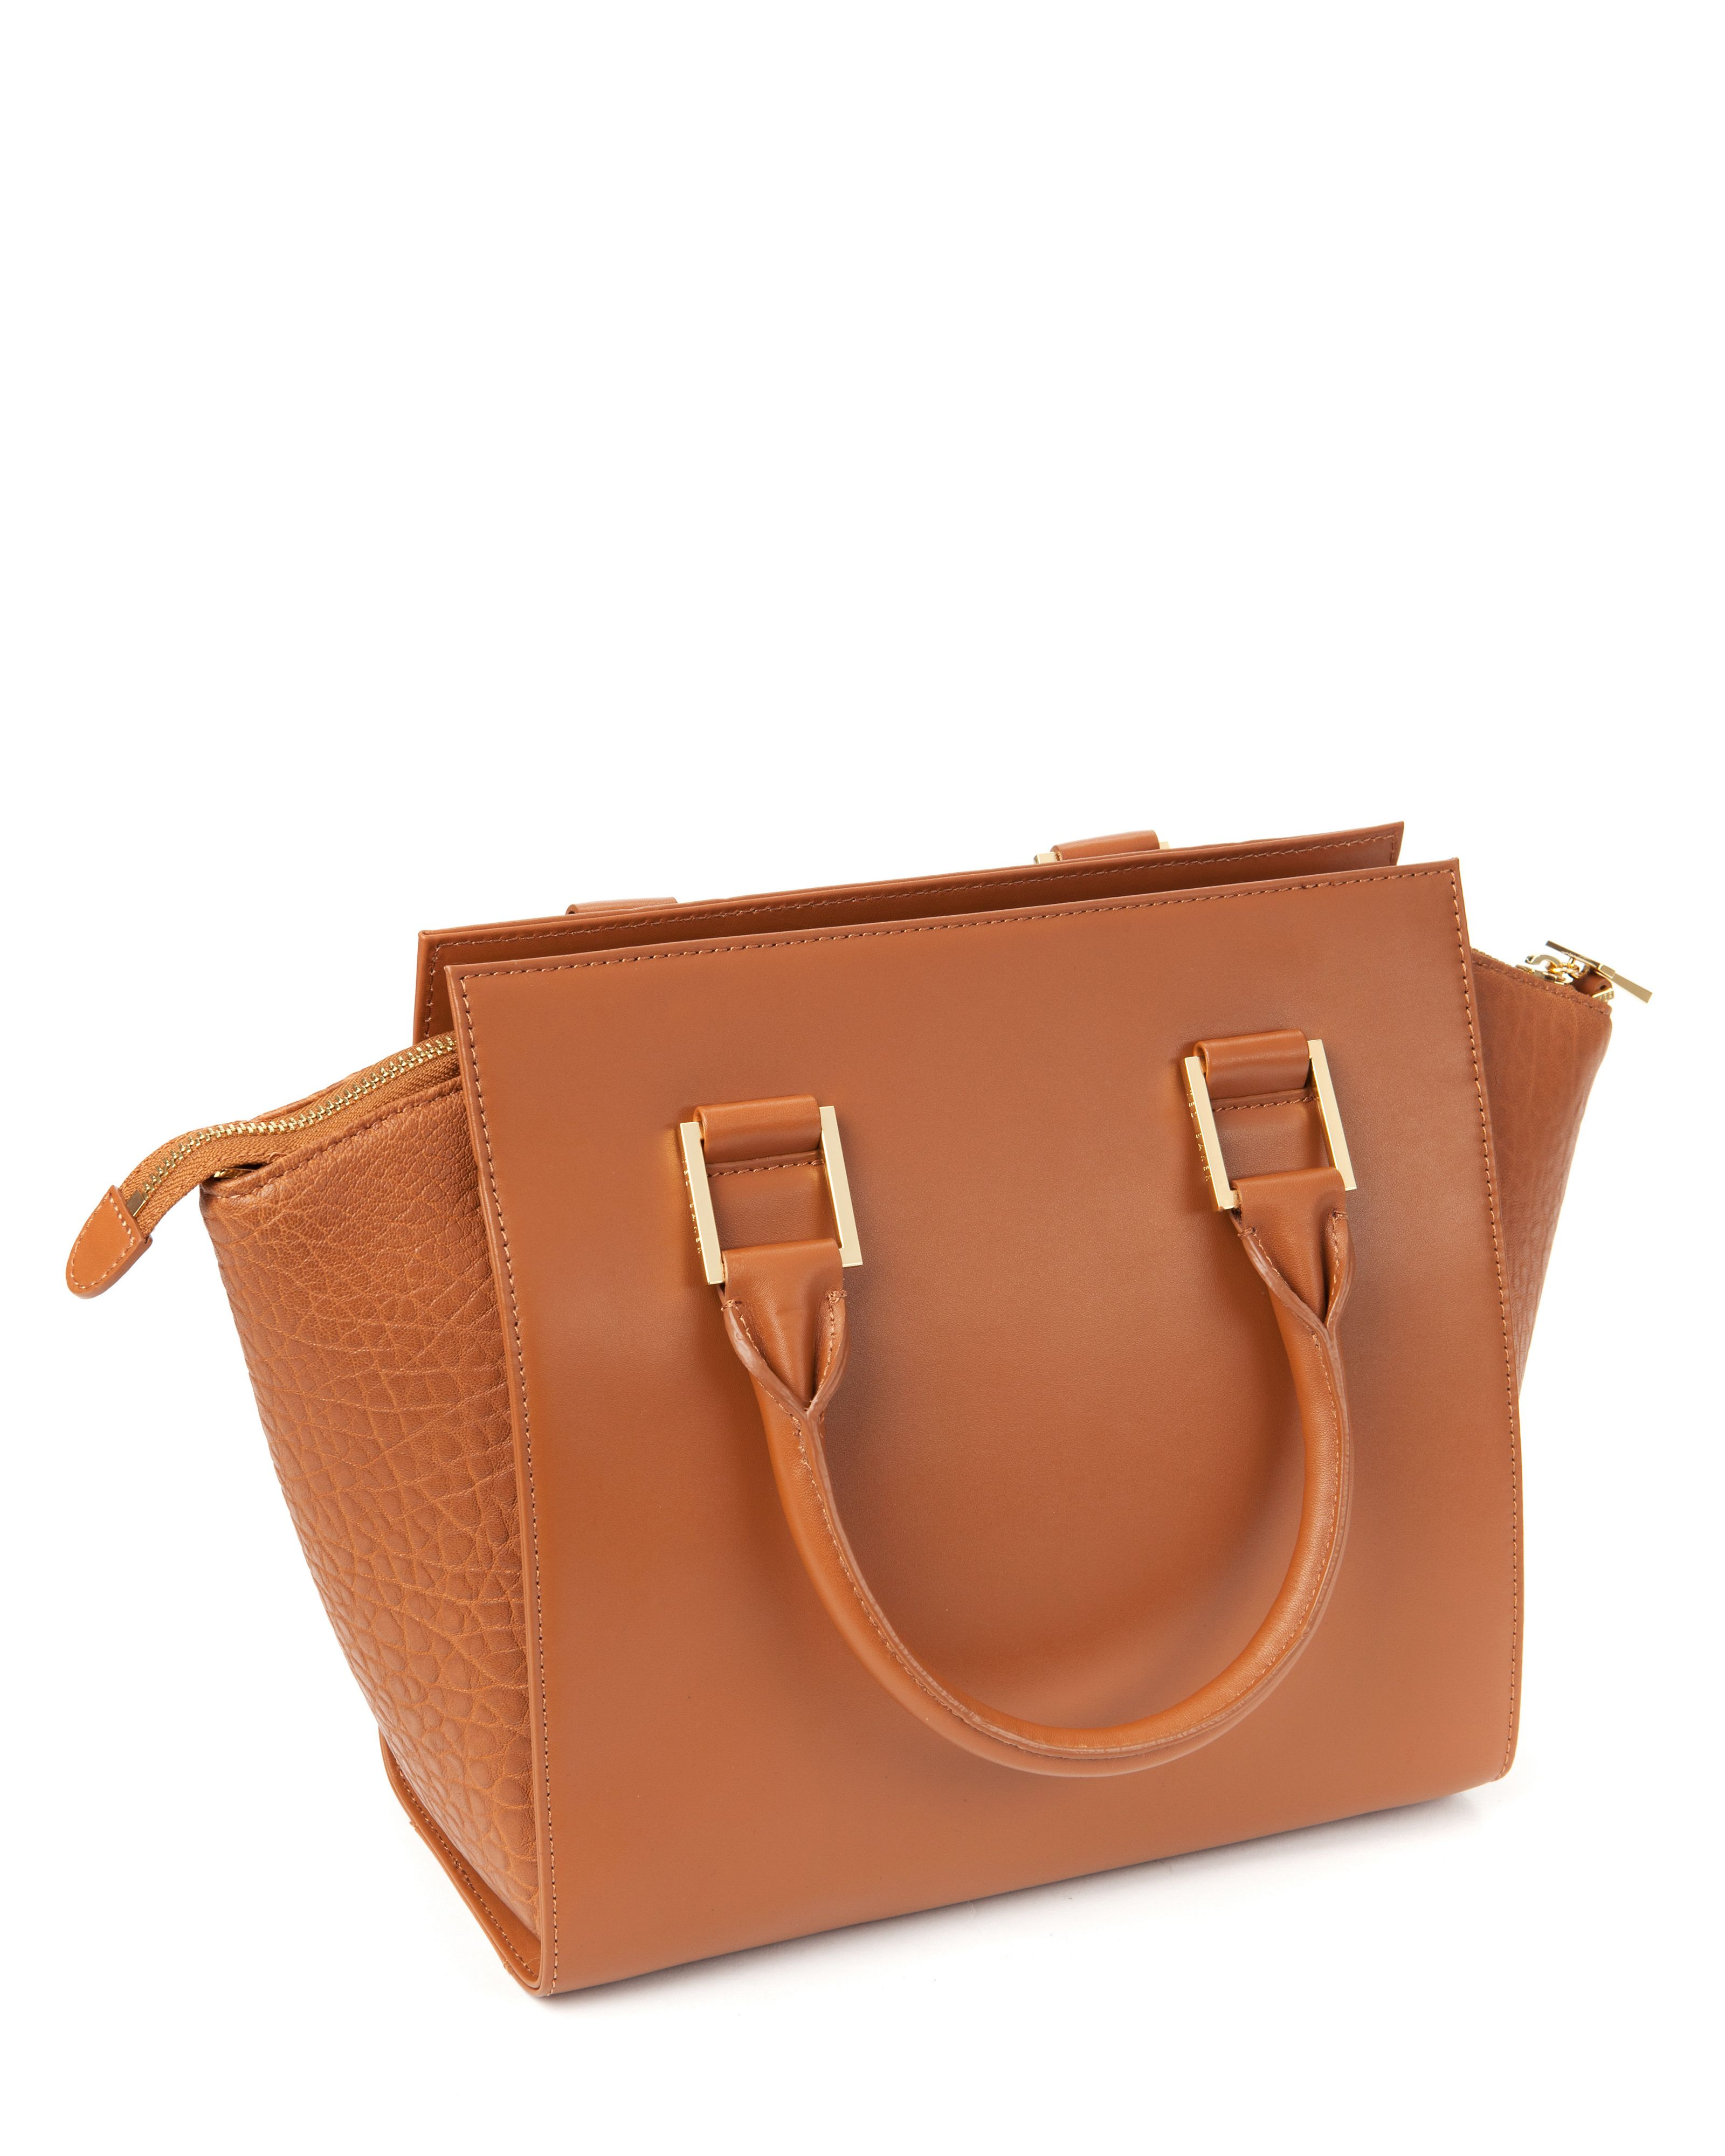 Layally leather tote bag